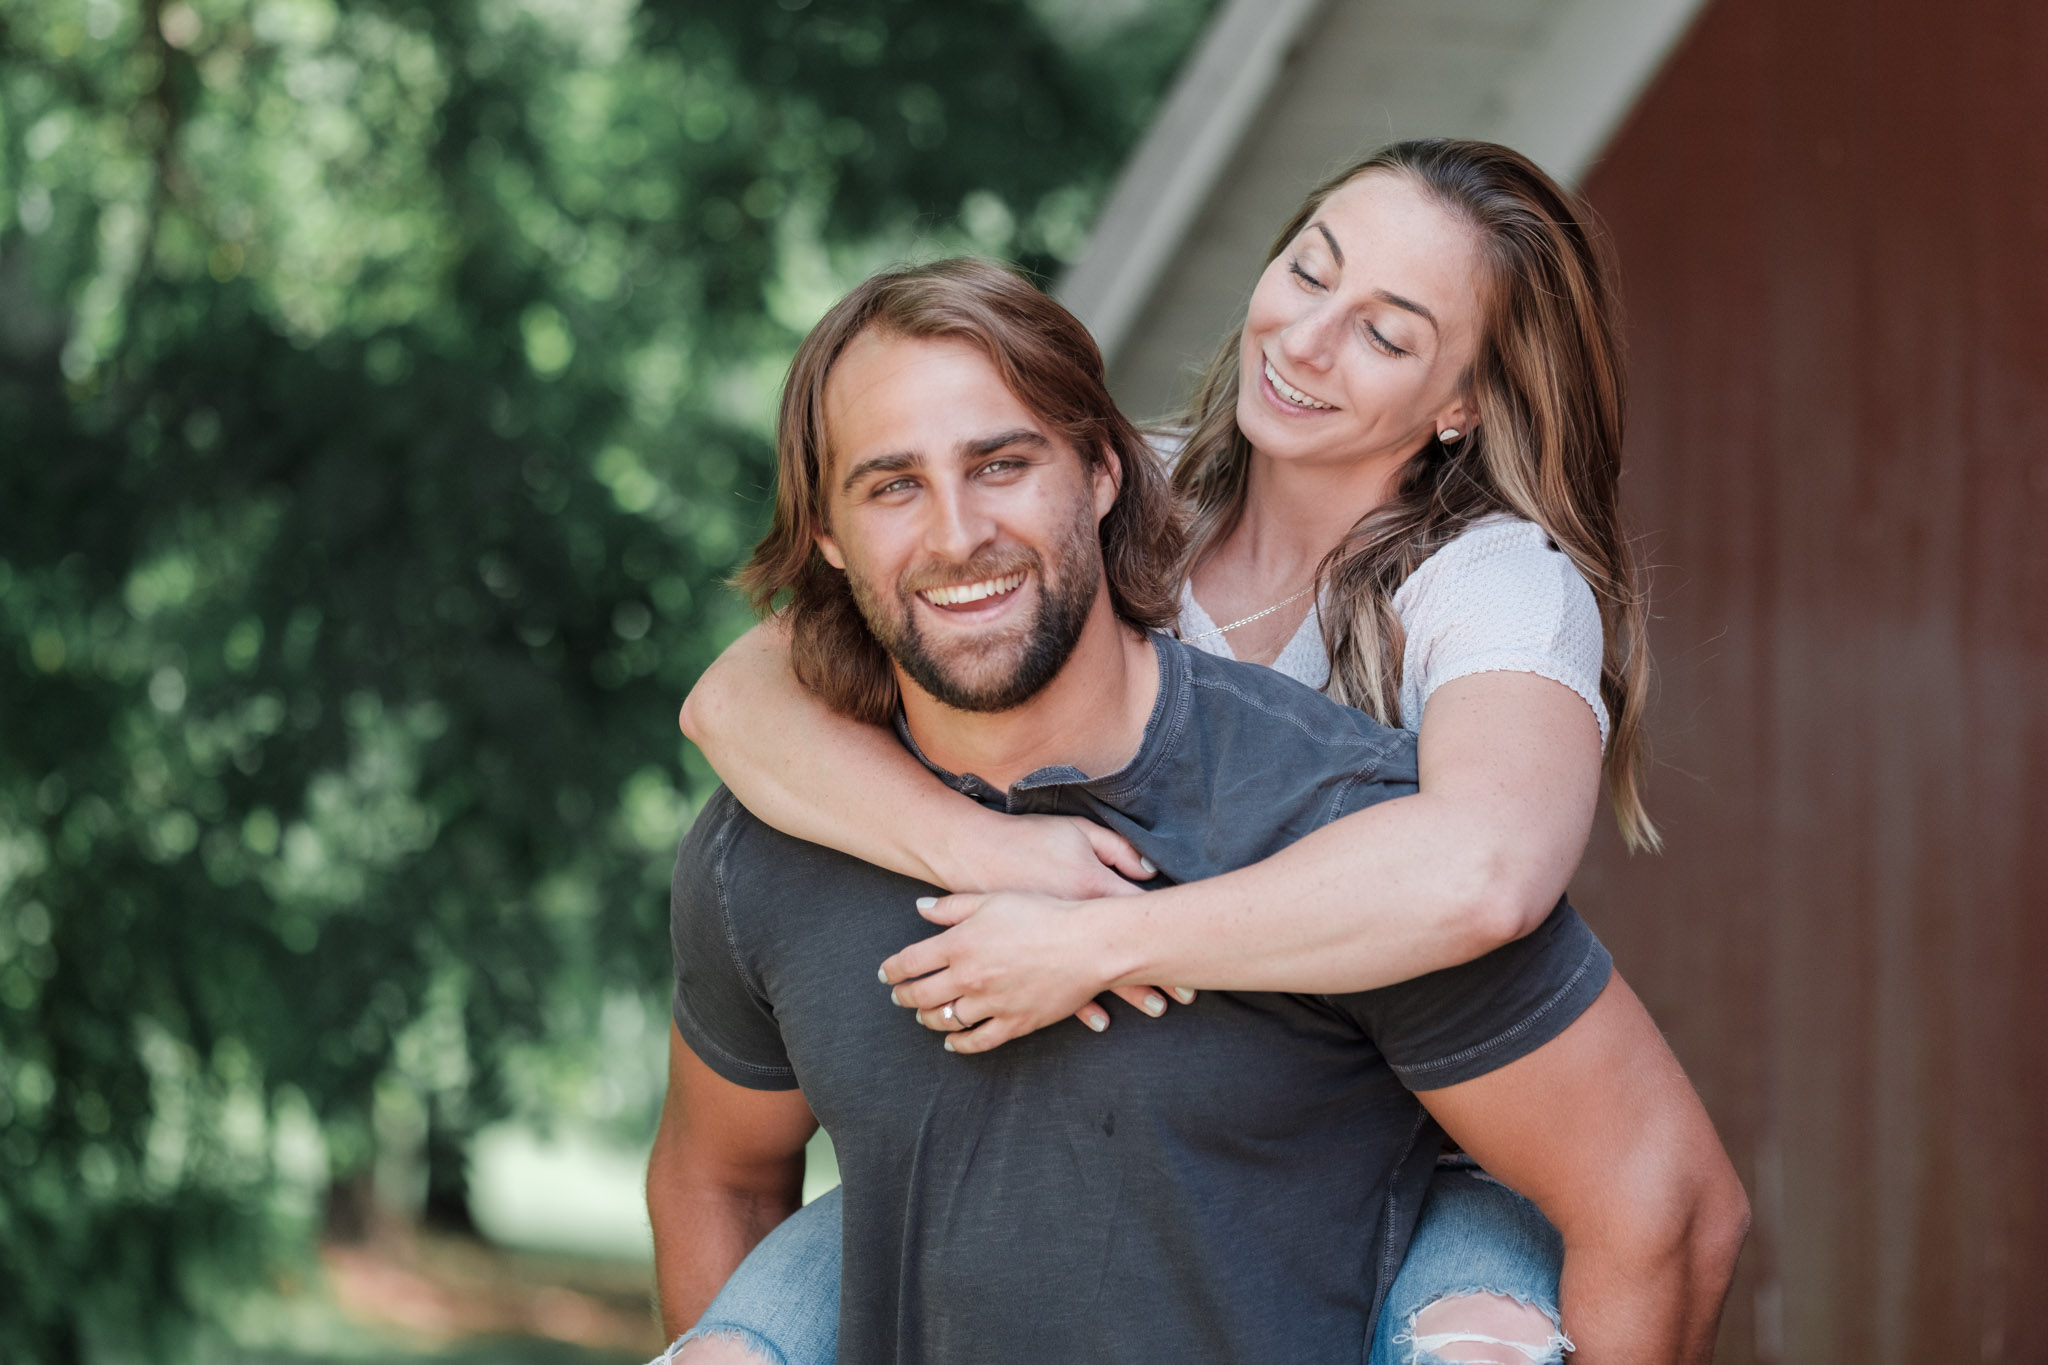 Crossfit couple embrace at The Pavilion at Orchard Ridge Farms during an engagement session next to red barn.